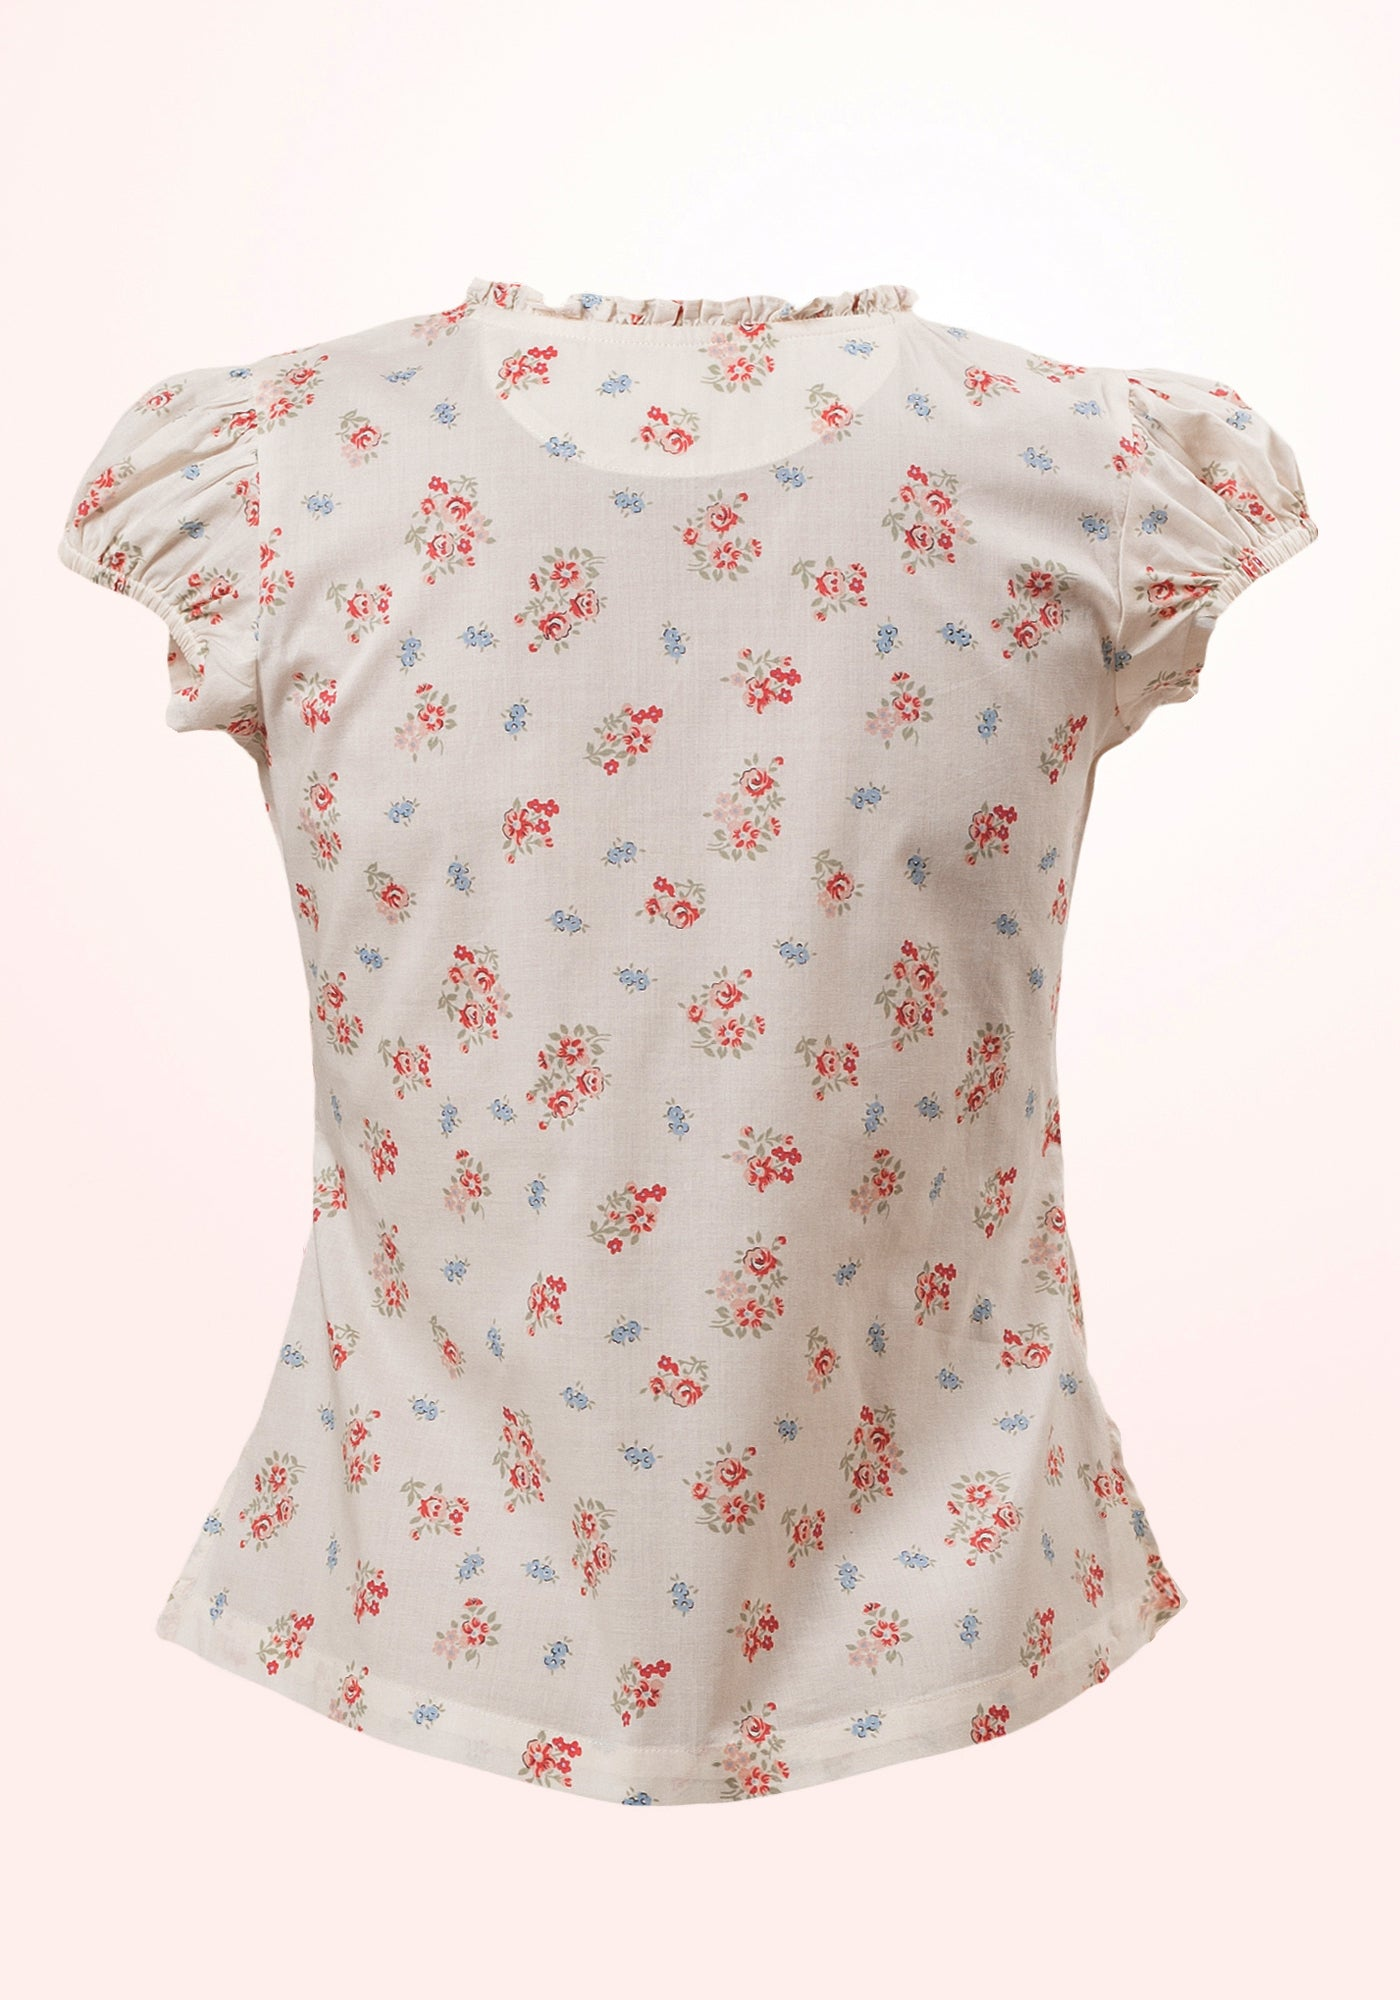 Summer Shower Girls Top in Printed Cotton - MINC ecofashion